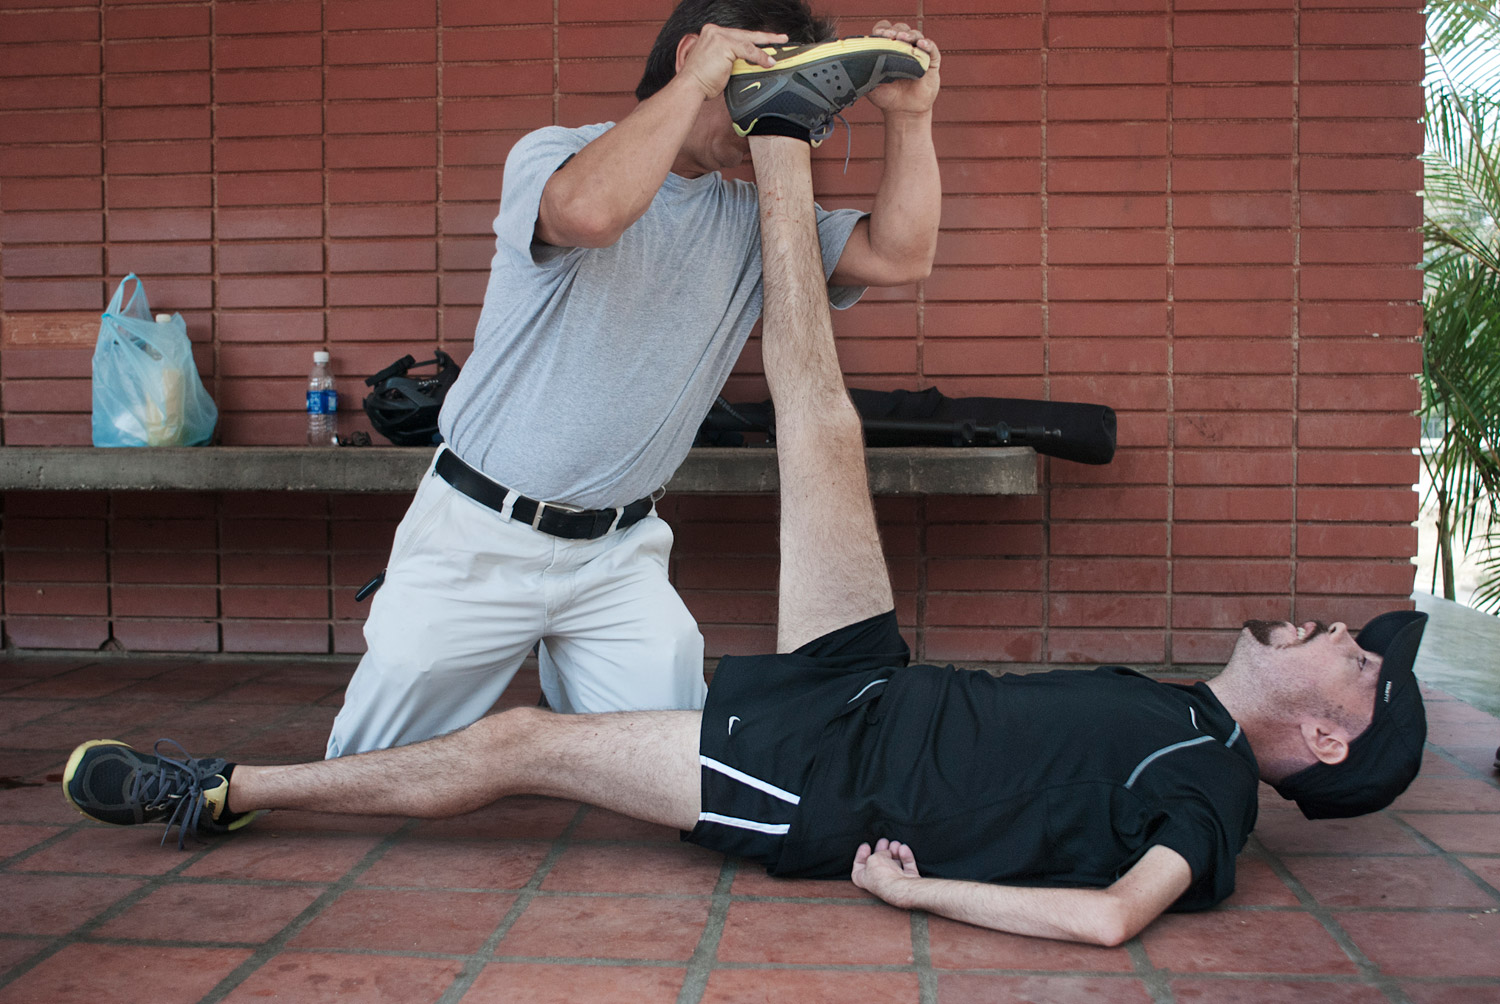 Galo Bermeo, Melamed's assistant for the past 15 years, helps him stretch after two hours of training in March 2010.